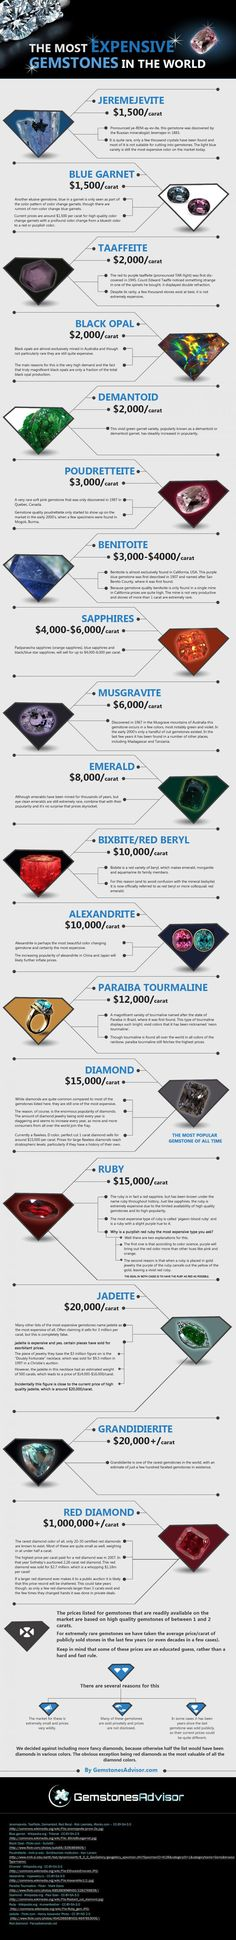 The most expensive gemstones in the world